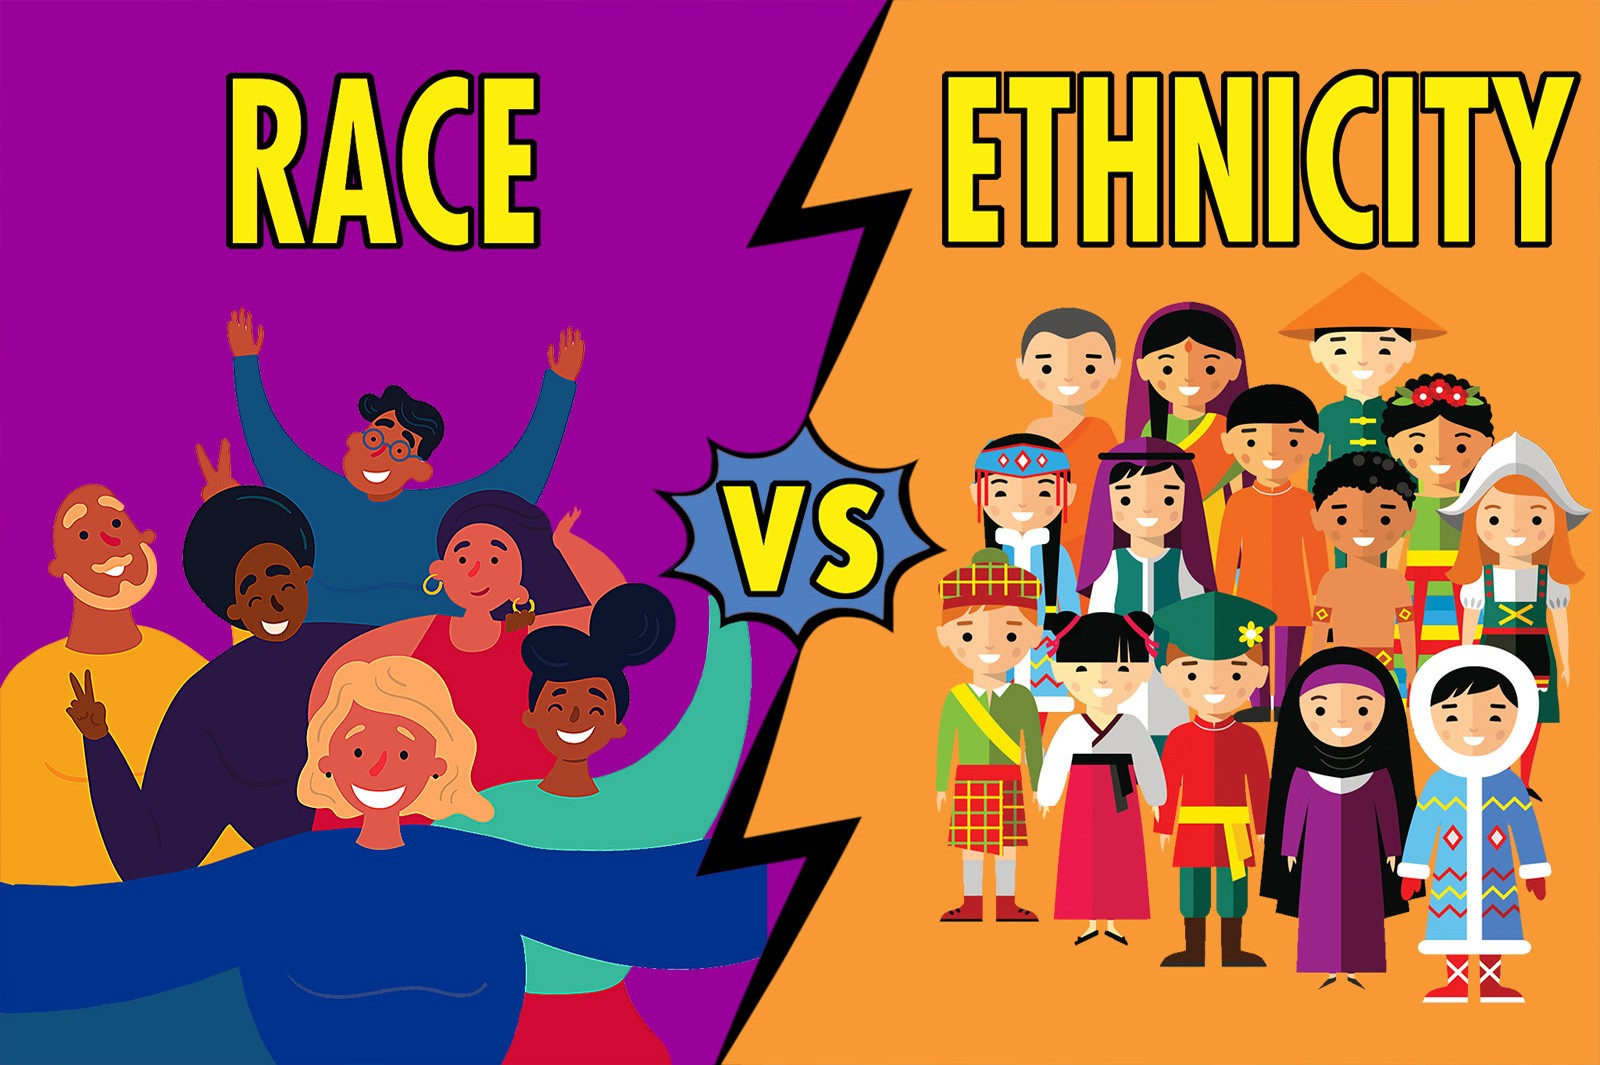 use of race vs ethnicity